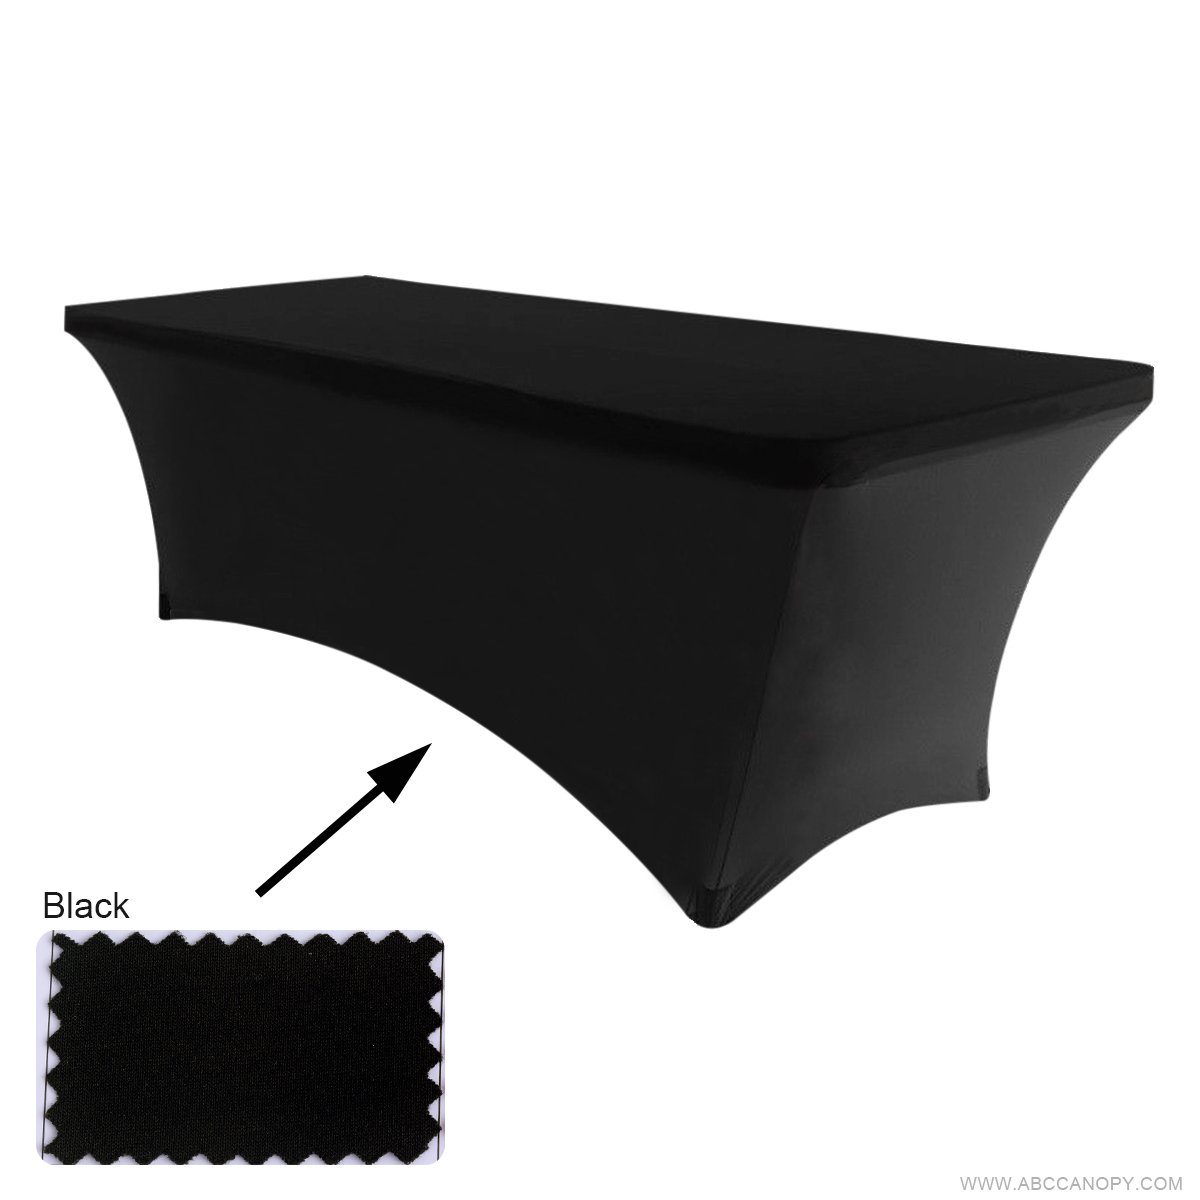 ABCCANOPY Spandex Table Cover 6 ft. Fitted 30+ Colors Polyester Tablecloth Stretch Spandex Table Cover-Table Toppers (Black)